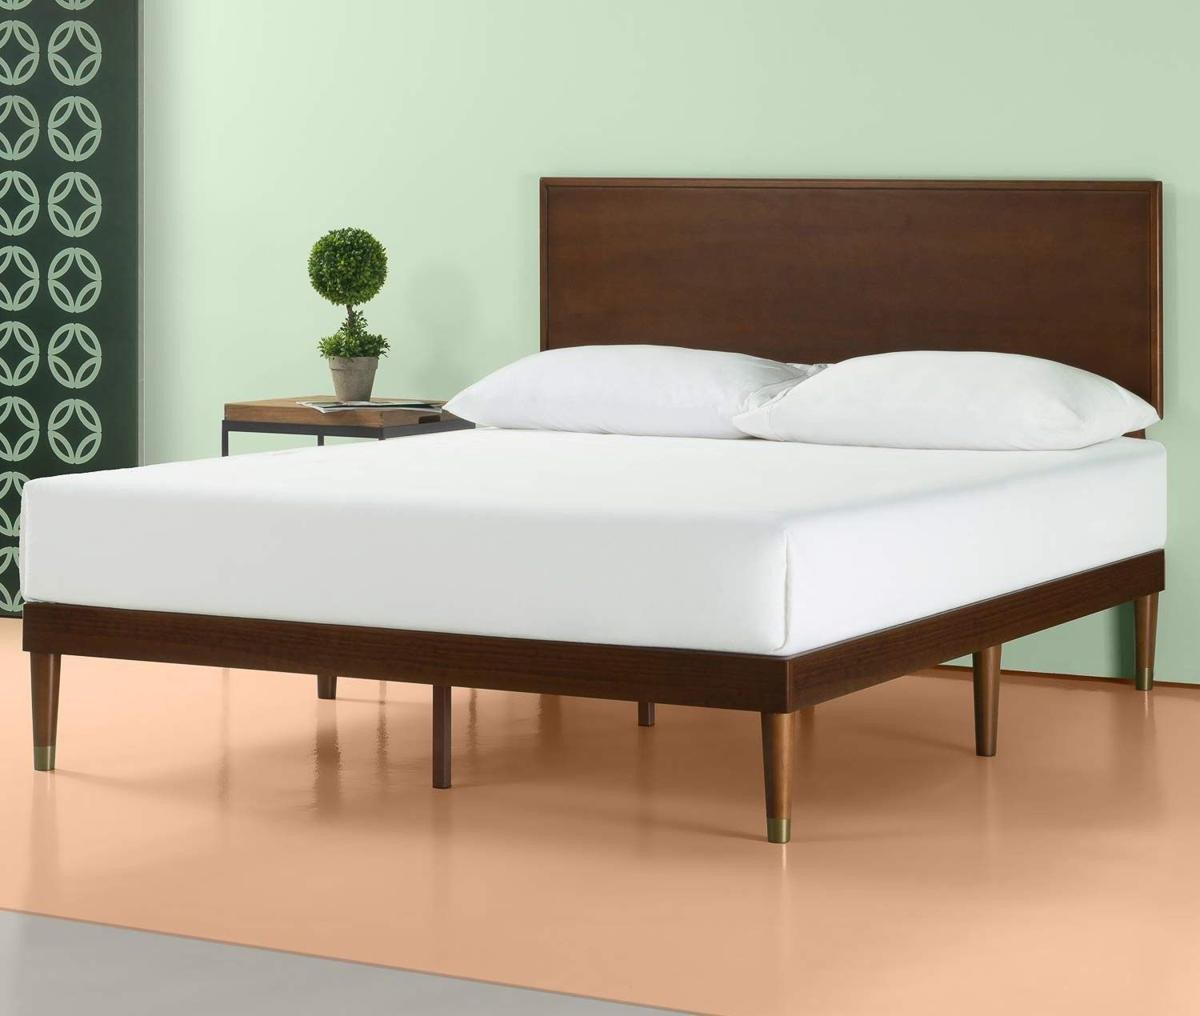 Mid Century Modern Bedroom Set Inspirational Get A West Elm Look for Under $300 with This Mid Century Bed